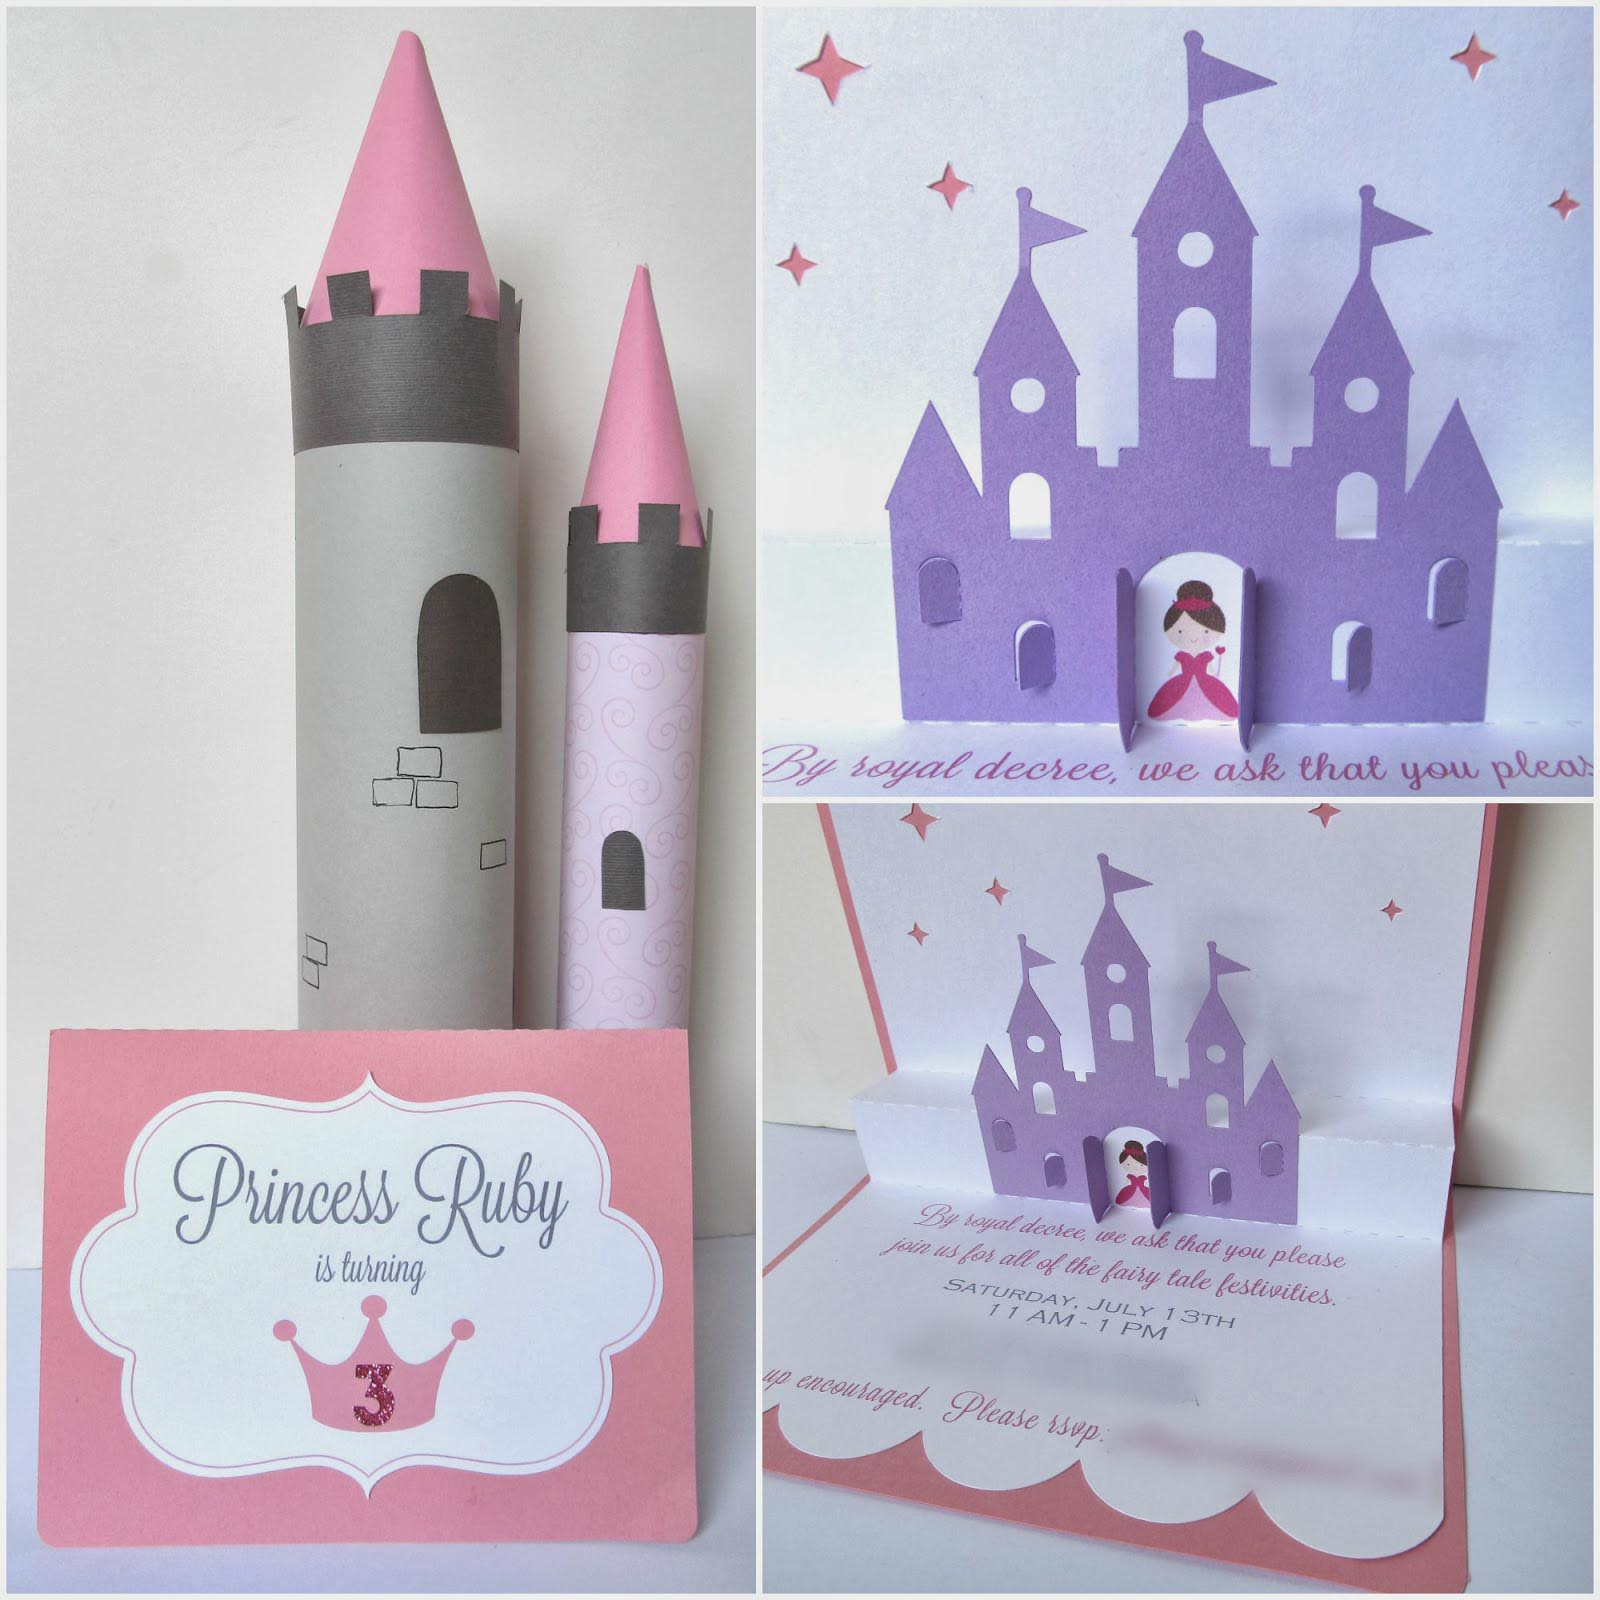 DIY Princess Party Invitations – Diy Princess Party Invitations